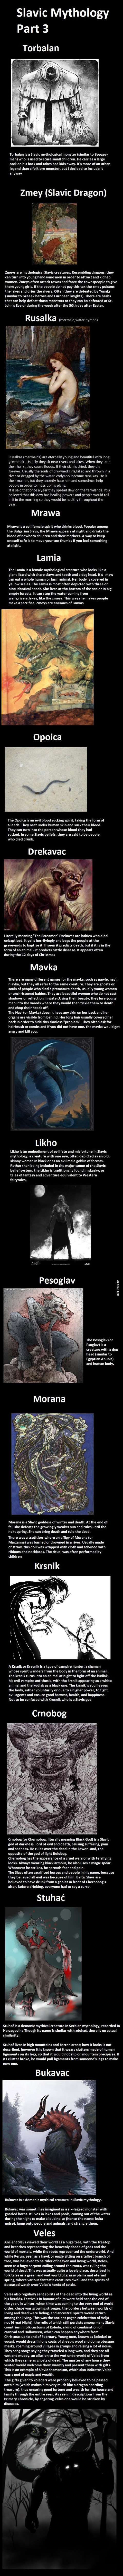 Slavic Mythology, monsters and gods, part 3 - 9GAG